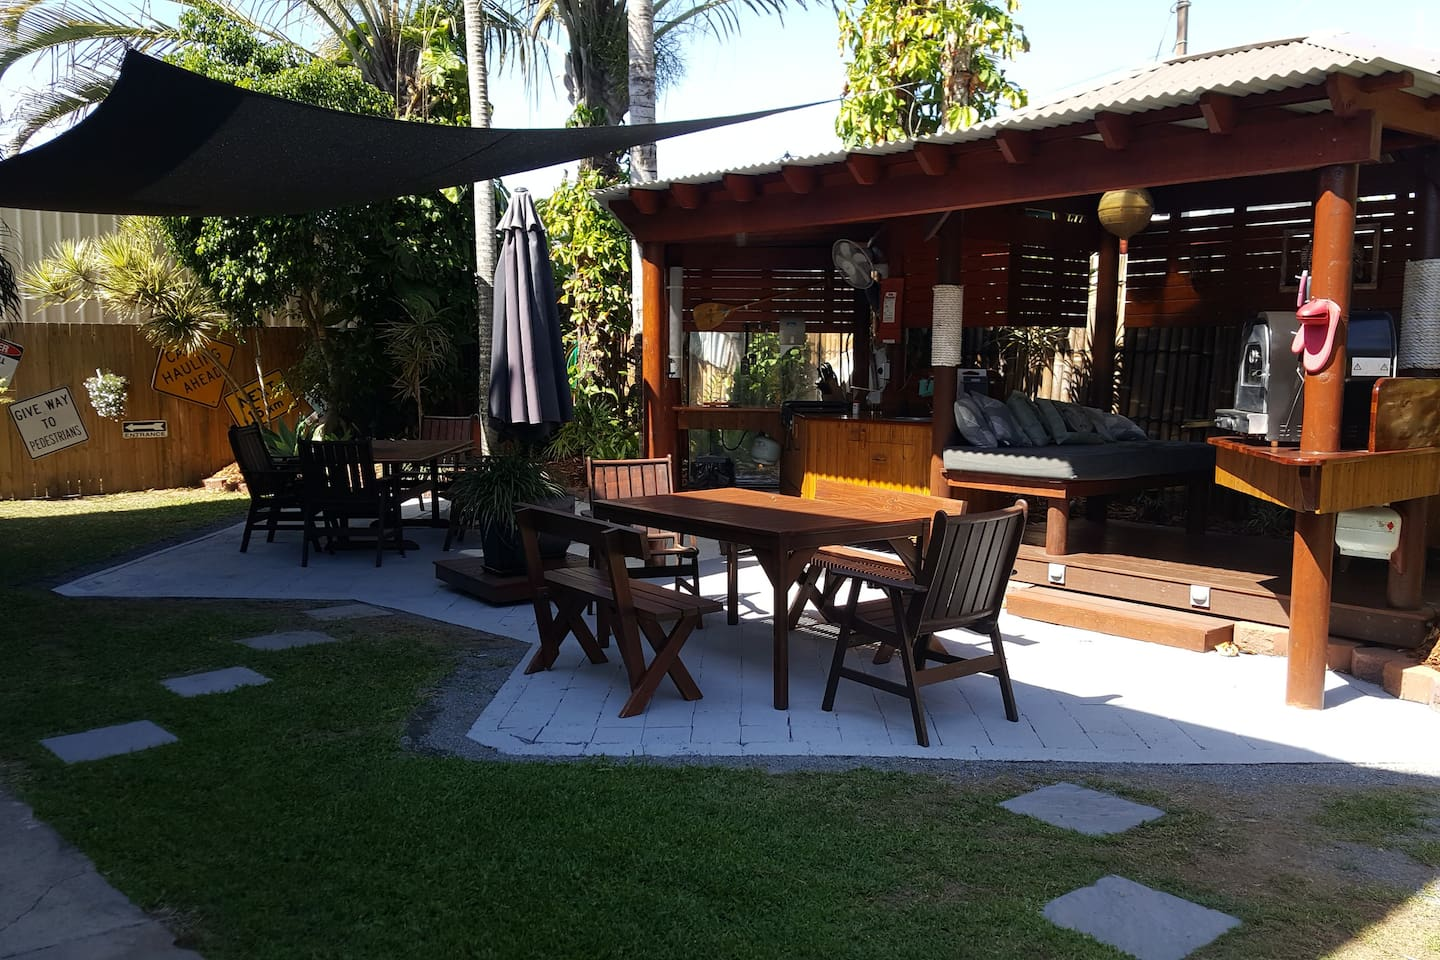 Outdoor kitchen and entertainment area.